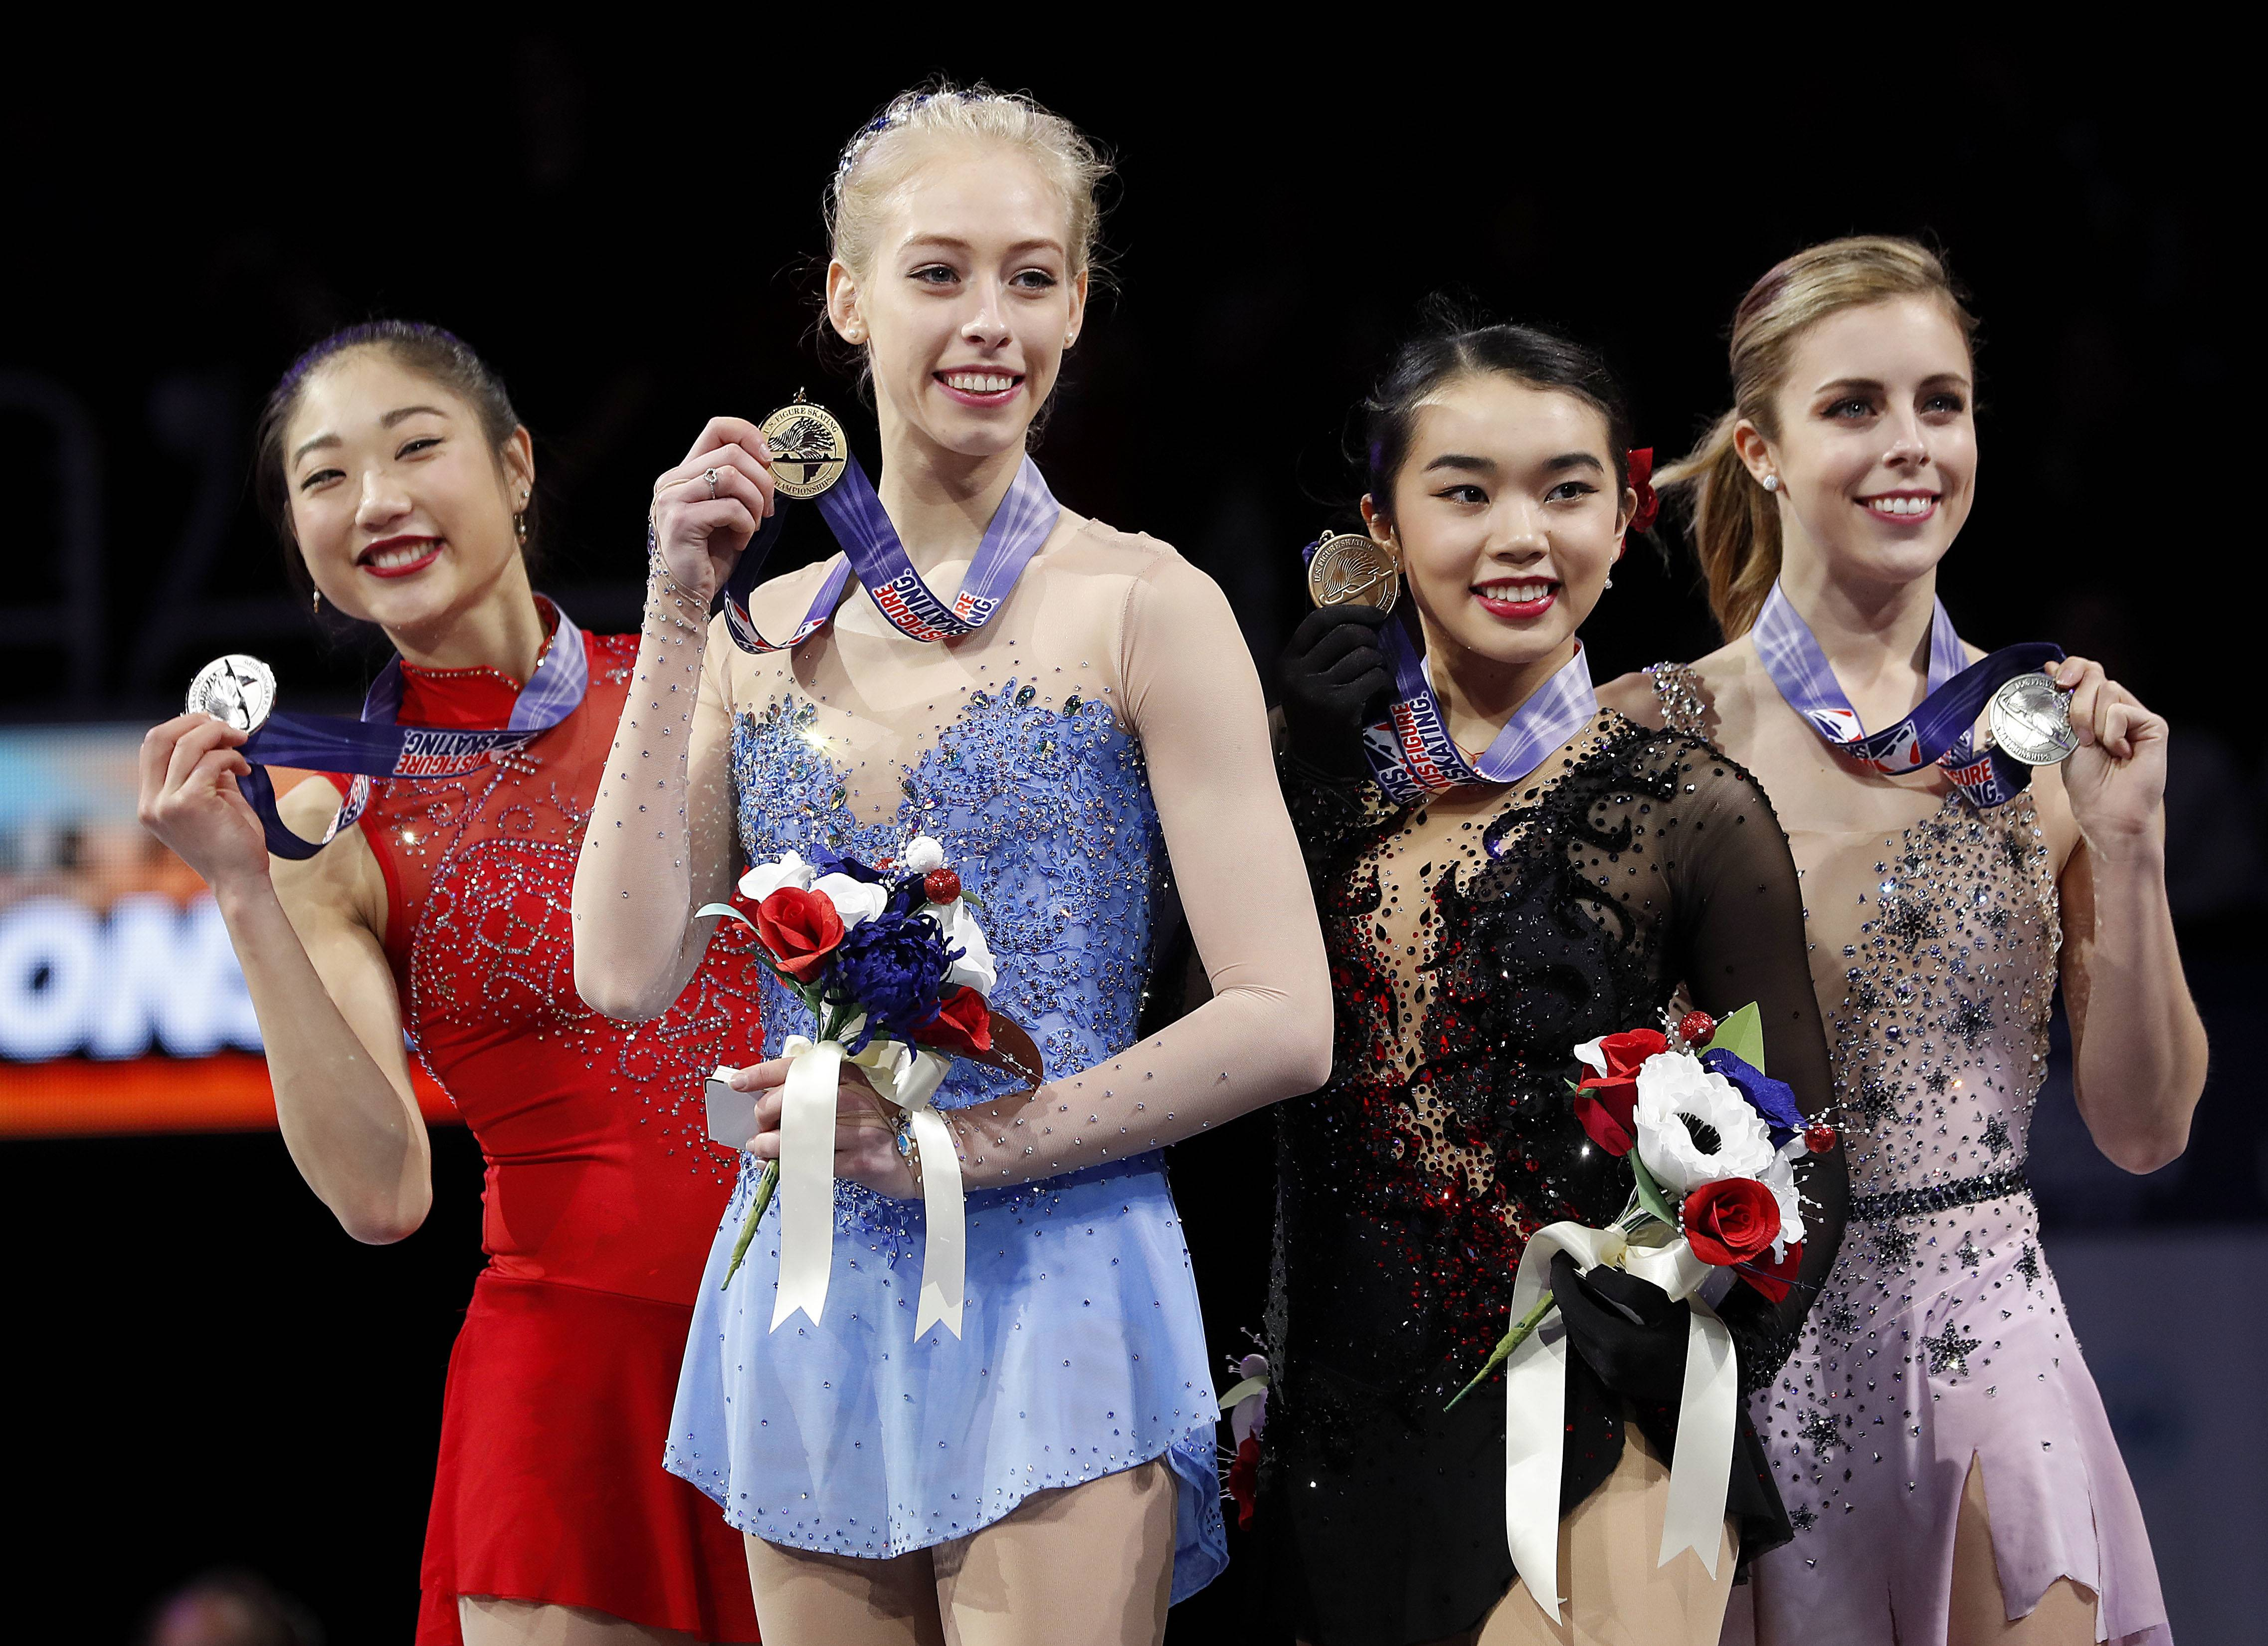 Bradie Tennell, foreground, poses Friday after winning the women's free skate event with second place finisher Mirai Nagasu, left, third place finisher Karen Chen, second from right, and fourth place finisher Ashley Wagner.